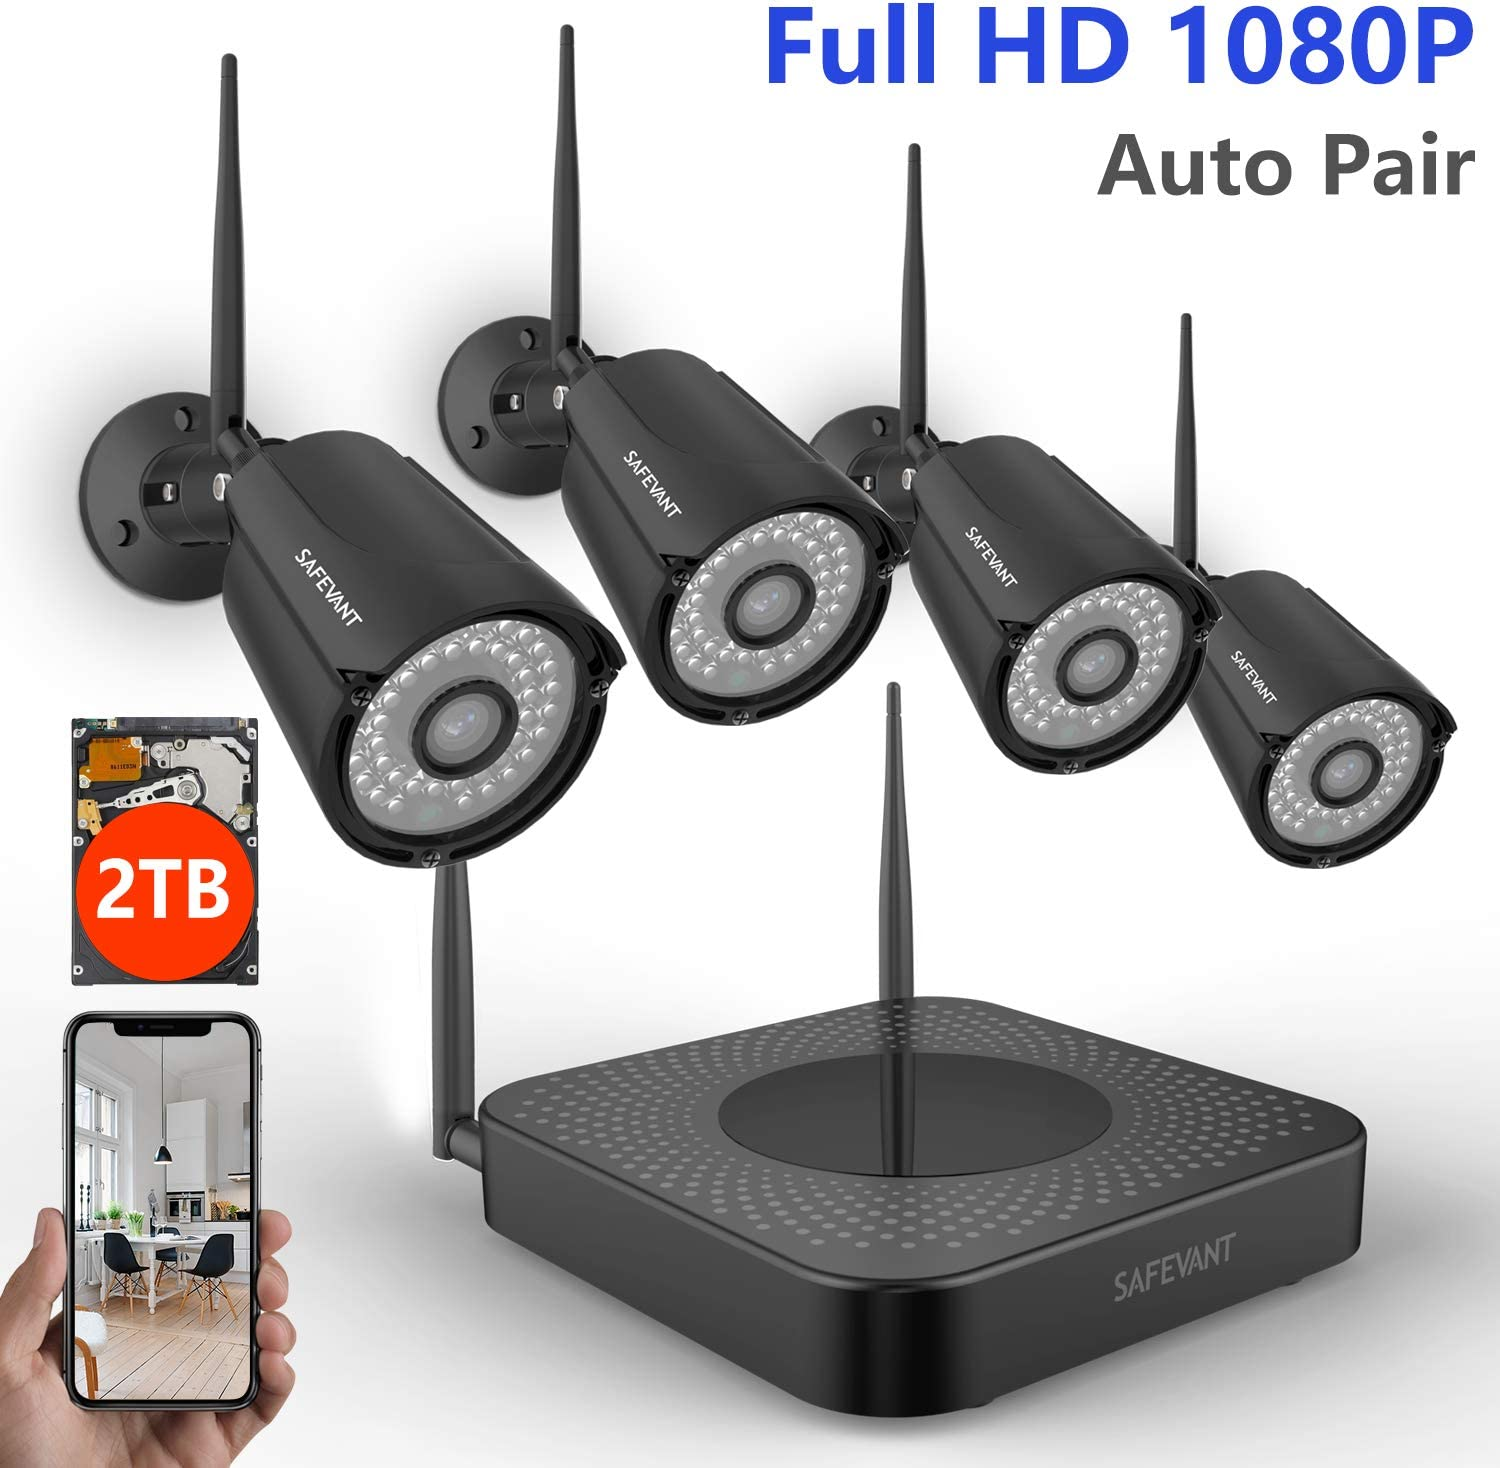 Full HD Security Camera System Wireless,Safevant 4CH Security Camera System 1080P 2TB Hard Drive ,4PCS 1080P Indoors Outdoors Wireless Security Cameras Black ,Auto-Pair,Plug Play,NO Monthly Fee